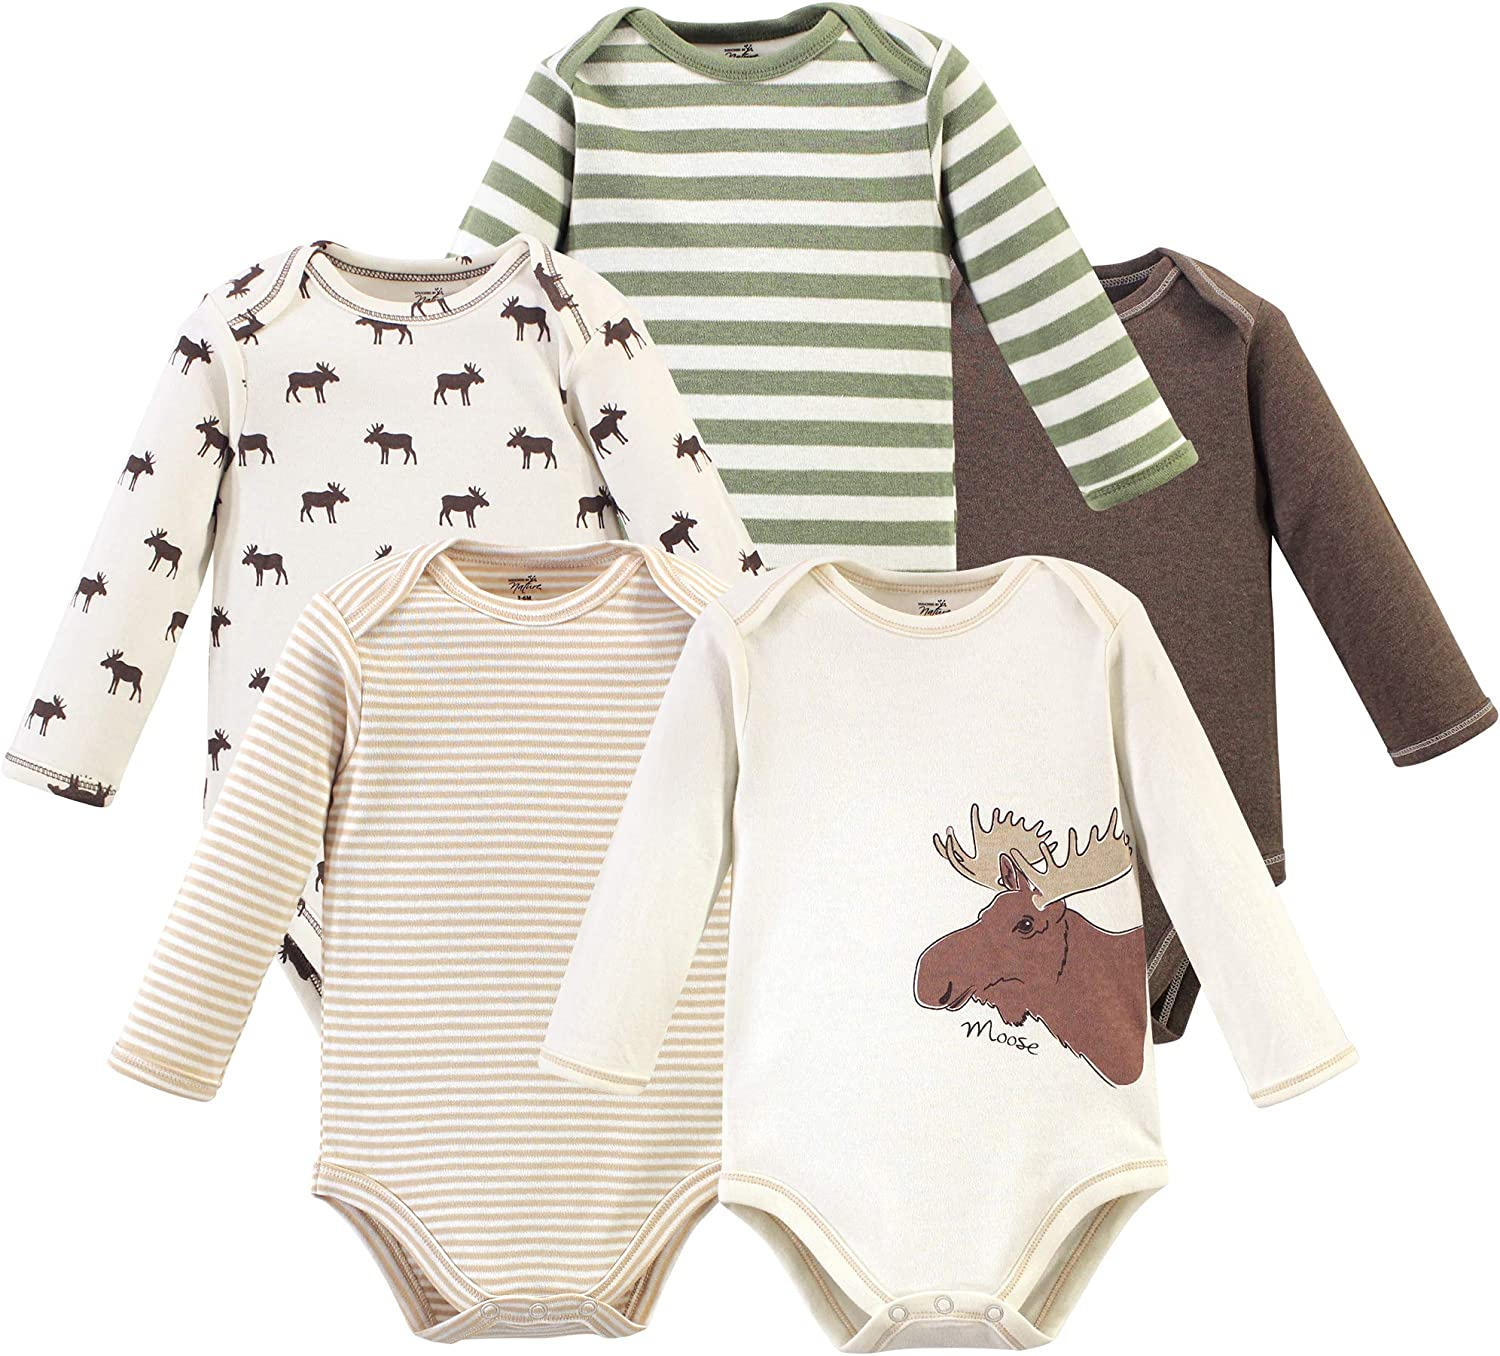 Touched by Nature Baby Organic Cotton Long-Sleeve Bodysuits